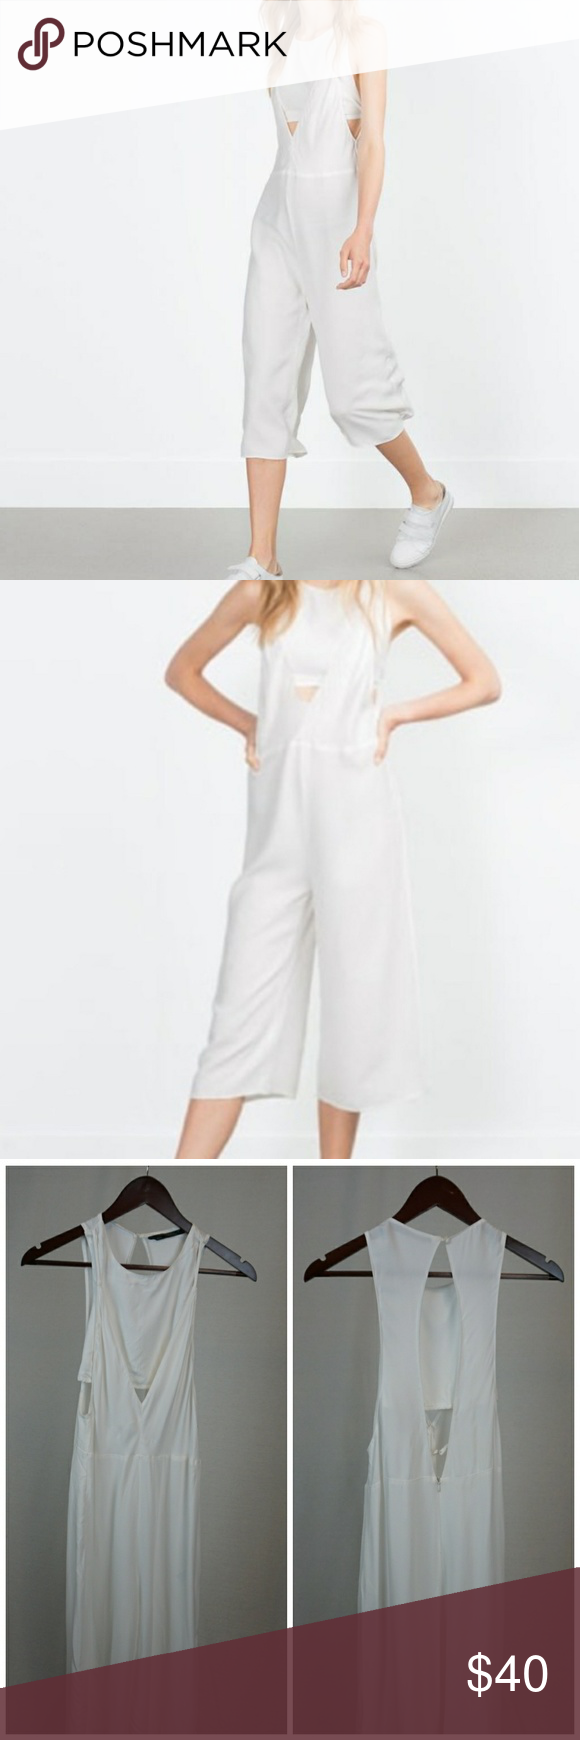 1c48a51640c ZARA Trafaluc Culottes Jumpsuit Size  Small Condition  Pre-owned with no  flaws.